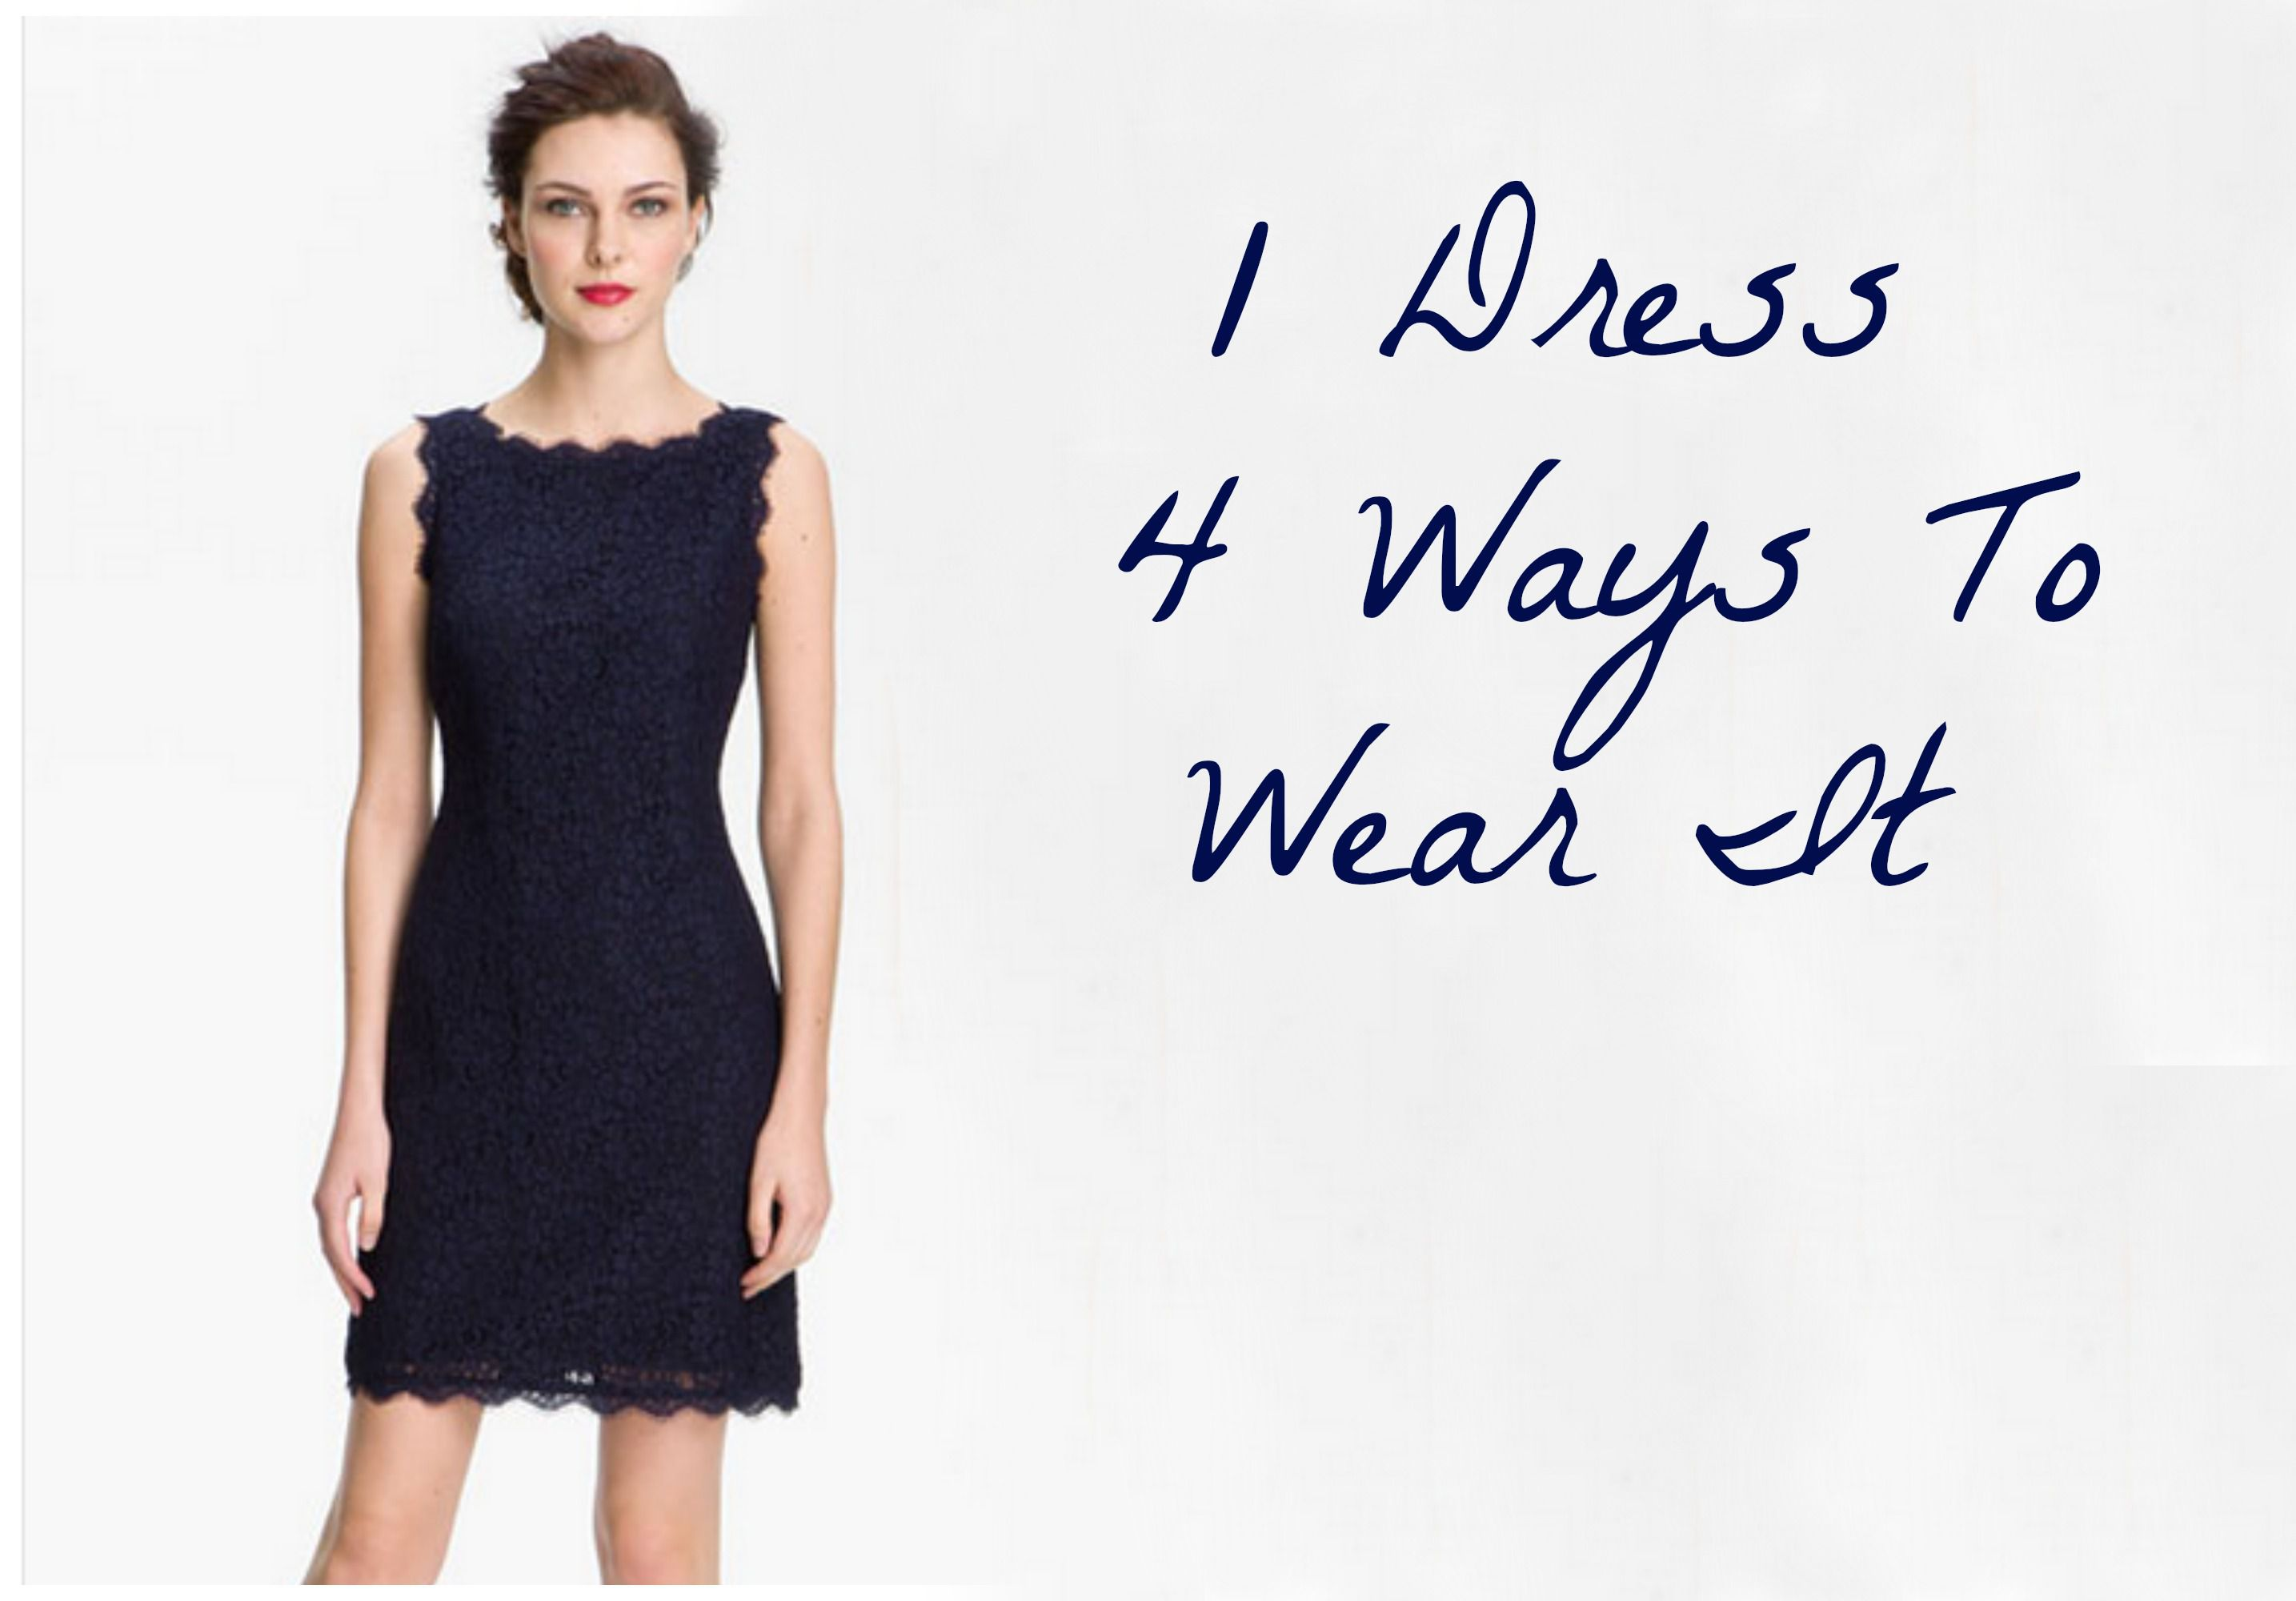 4 Ways to wear a bridesmaid dress